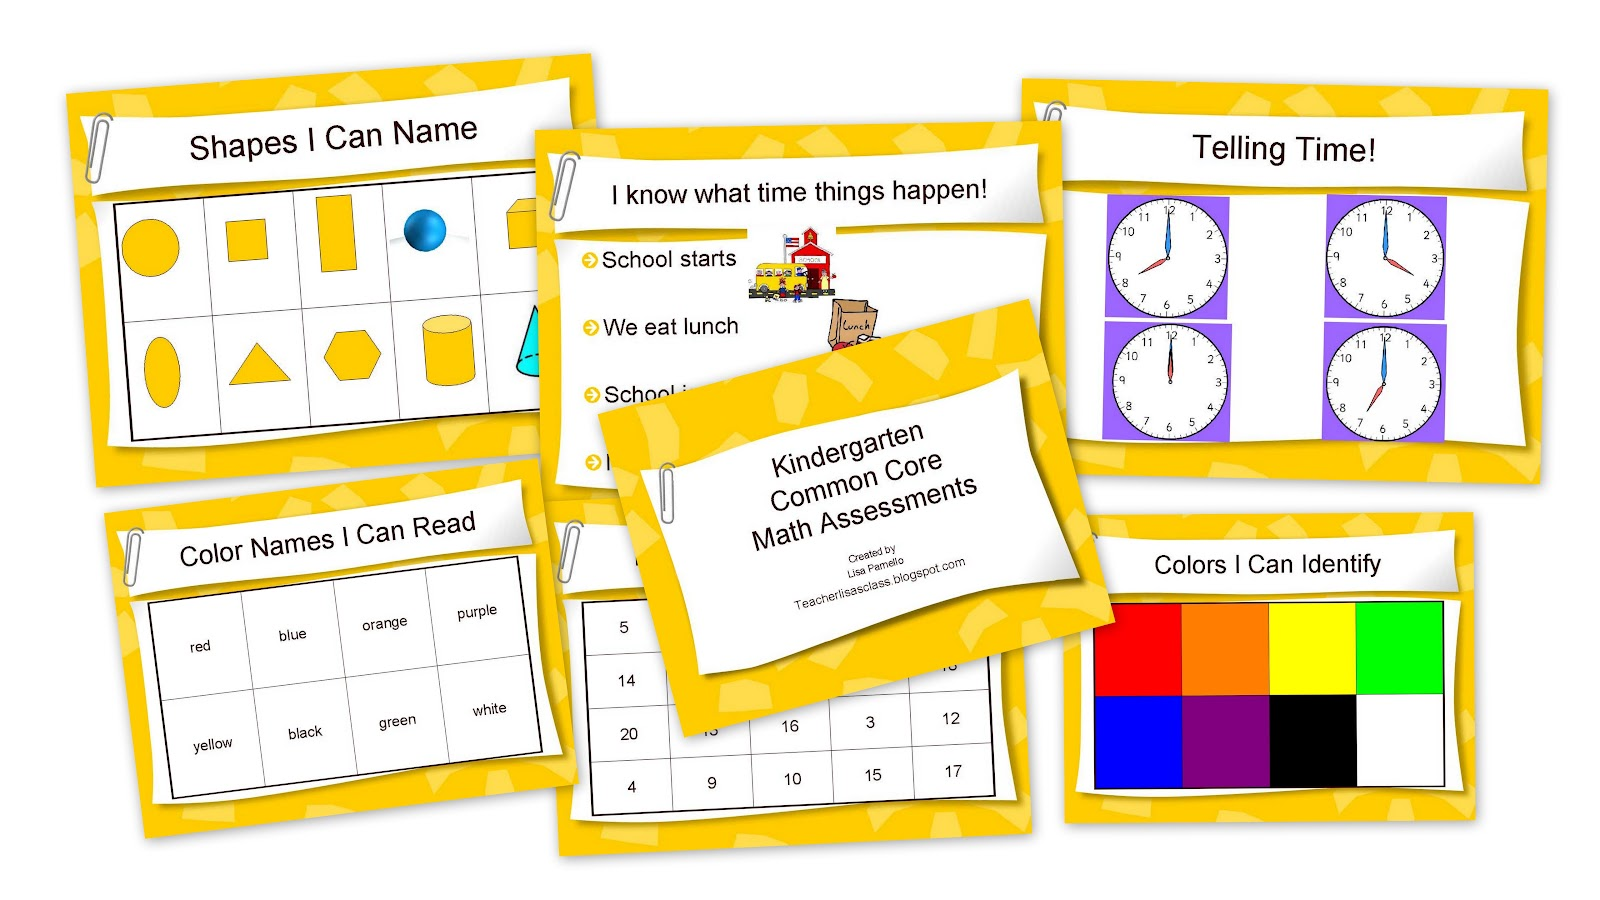 The Lower Elementary Cottage Kindergarten Common Core Math Assessment